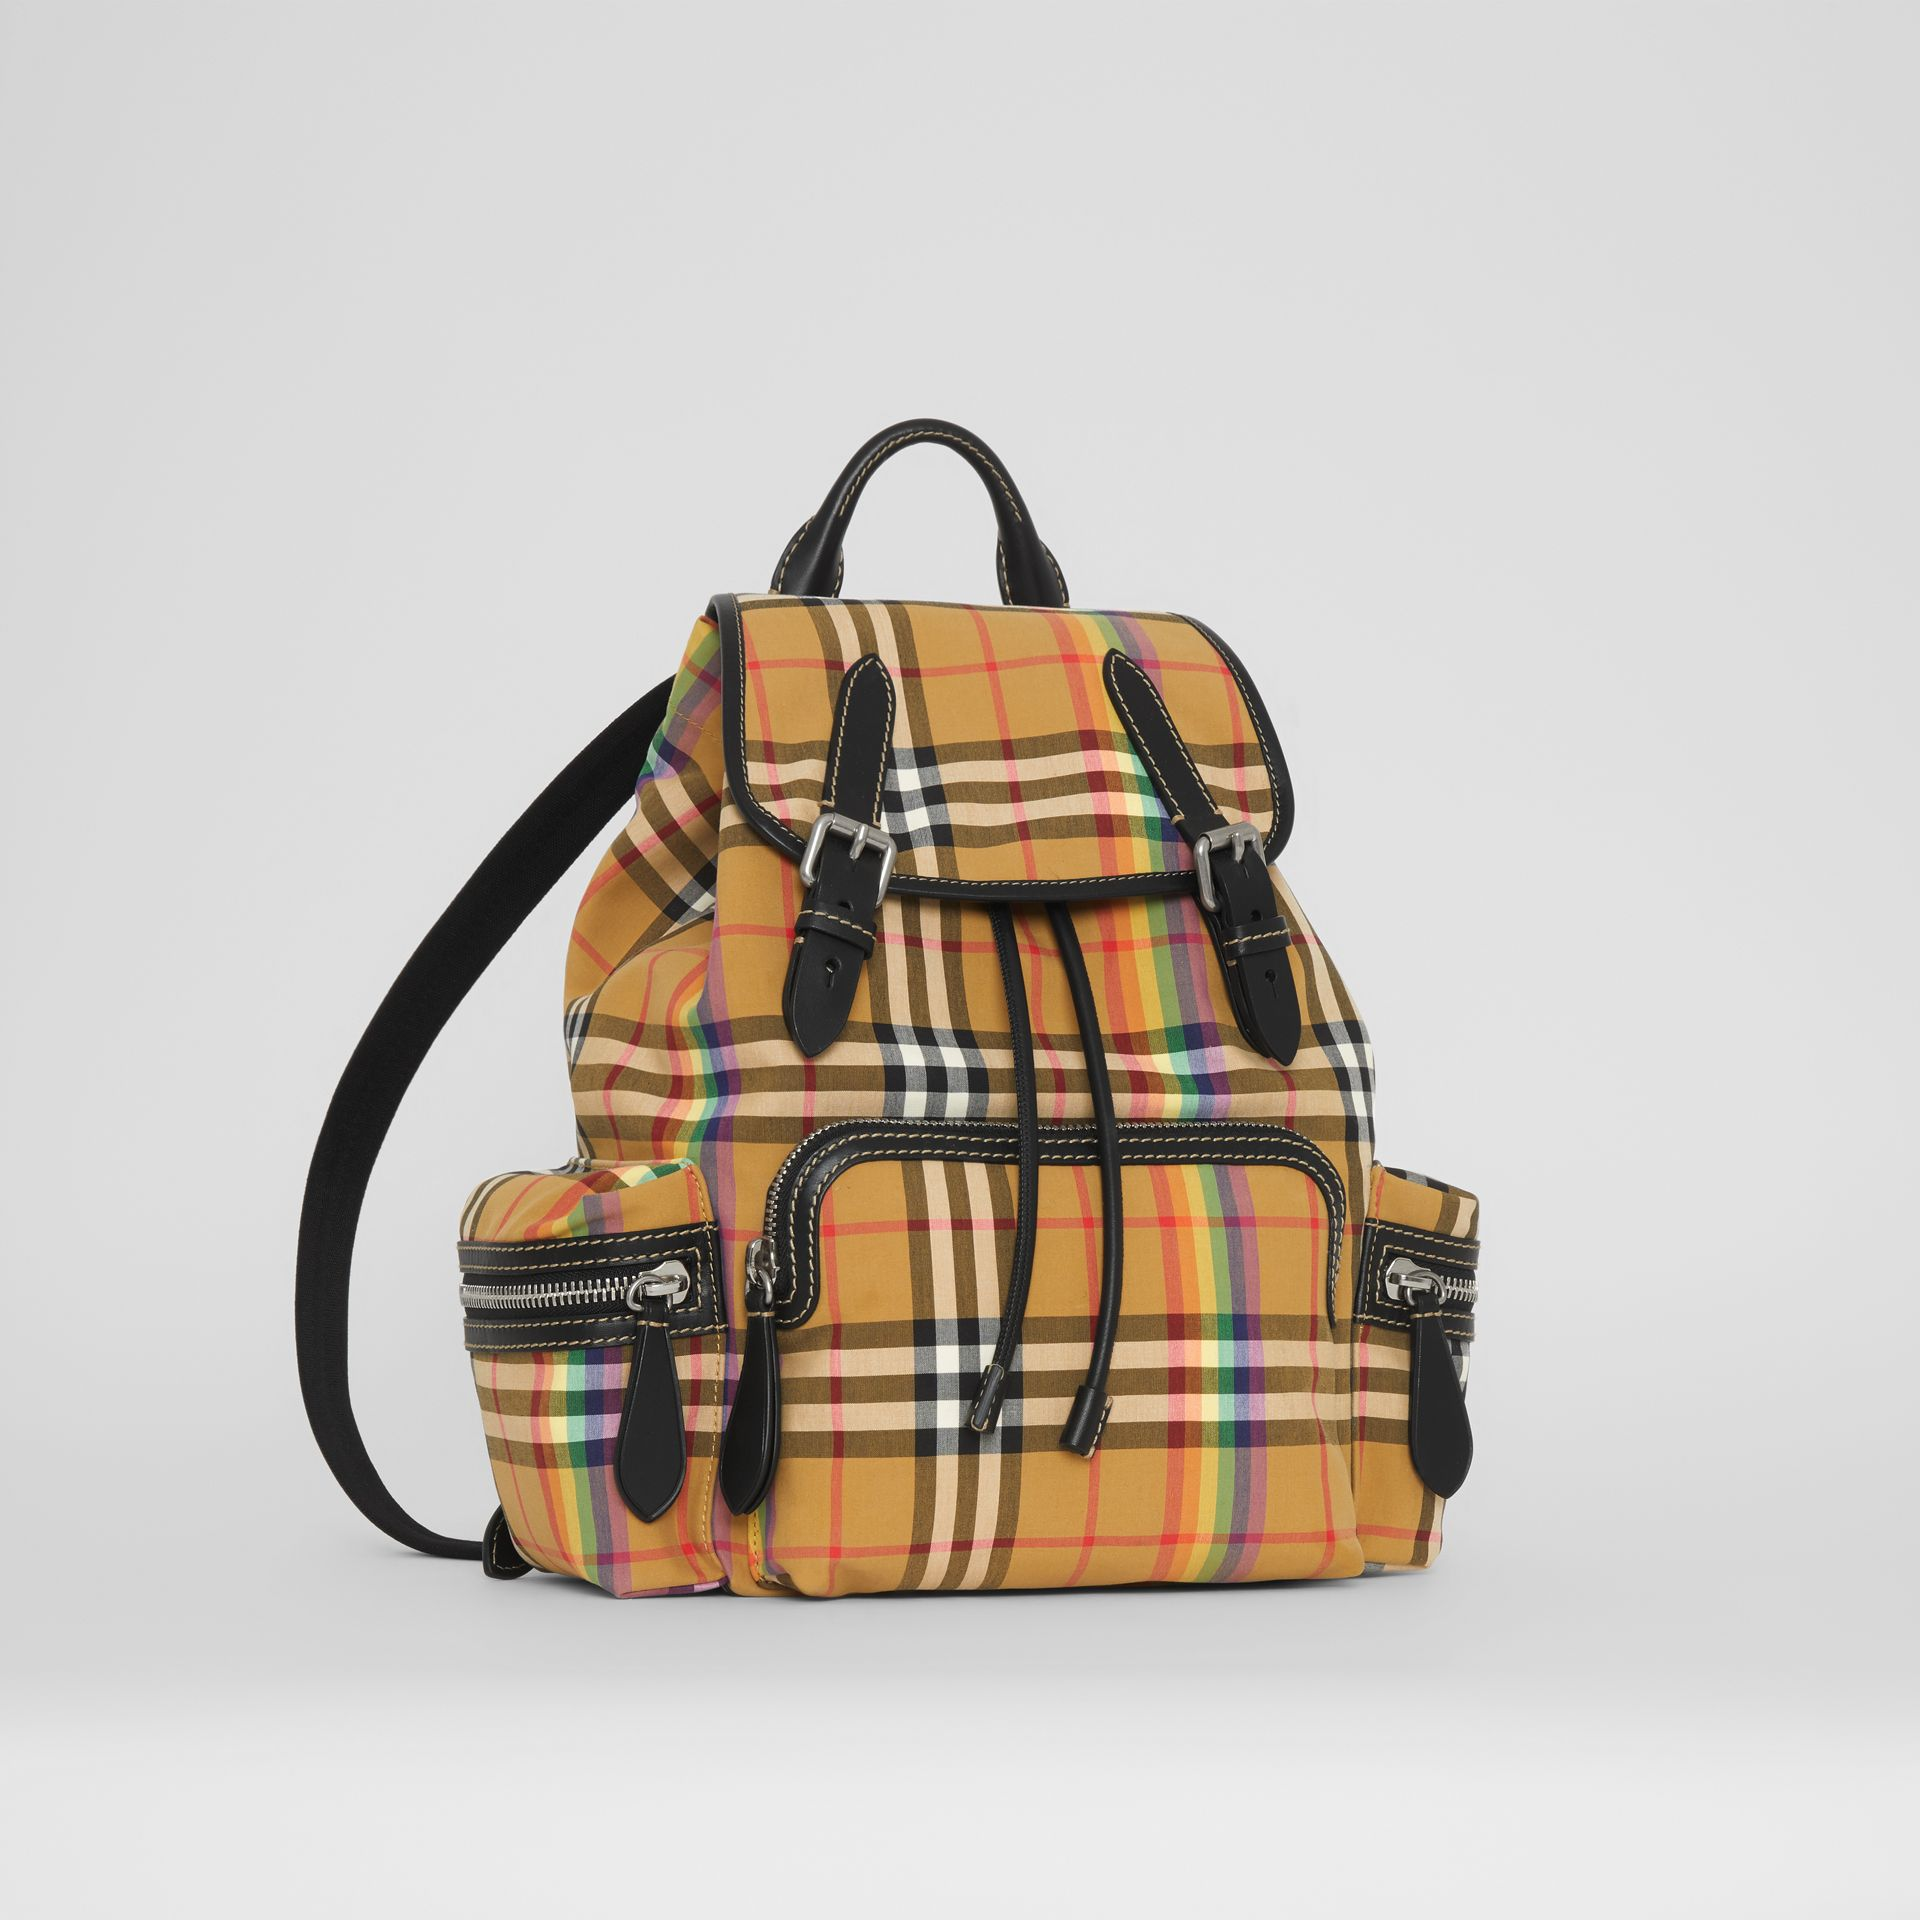 Sac The Rucksack moyen à motif Rainbow Vintage check (Jaune Antique) - Femme | Burberry - photo de la galerie 6